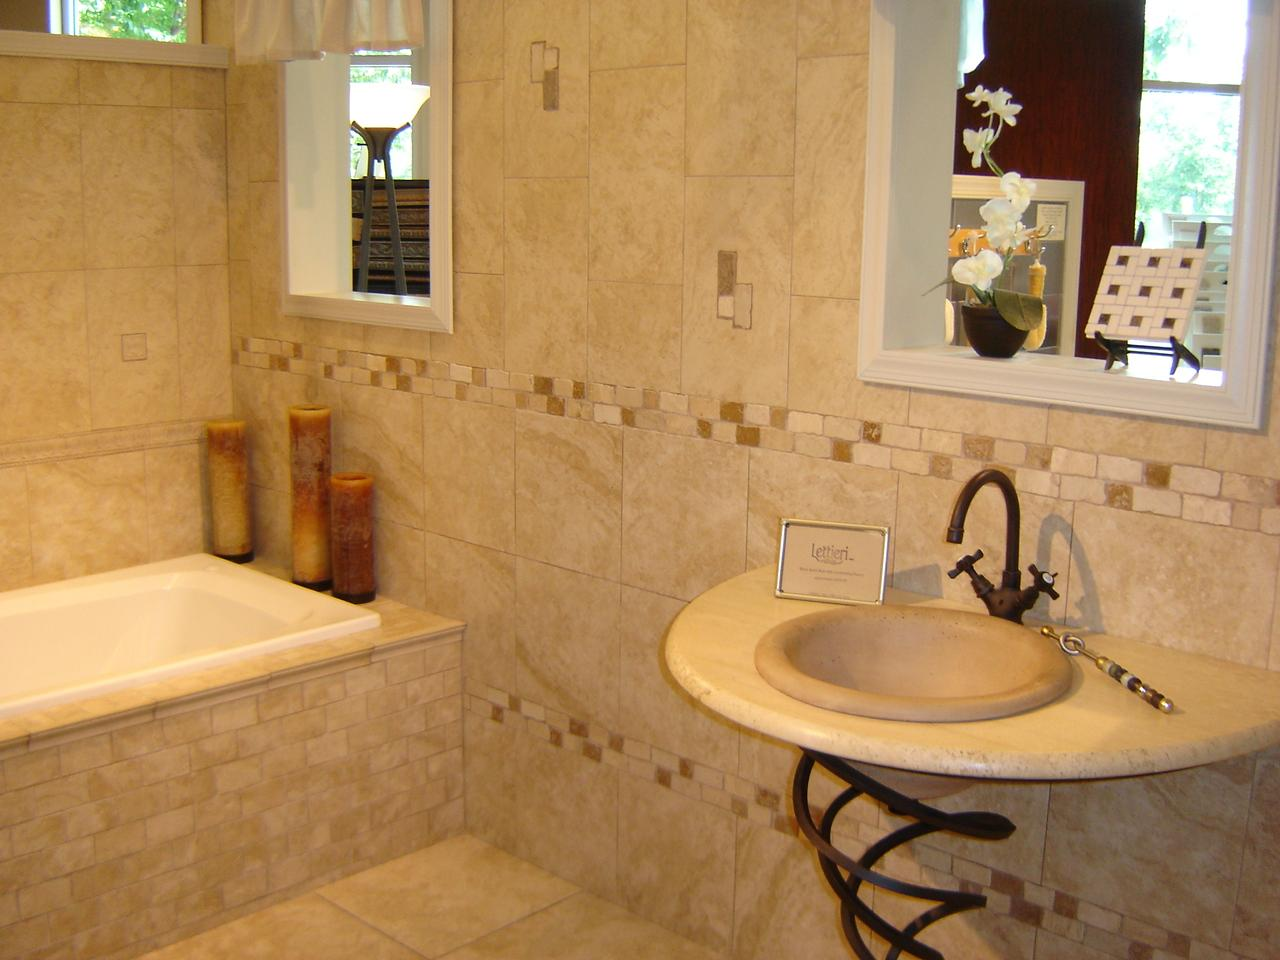 Bathroom wall tile ideas Photo - 1